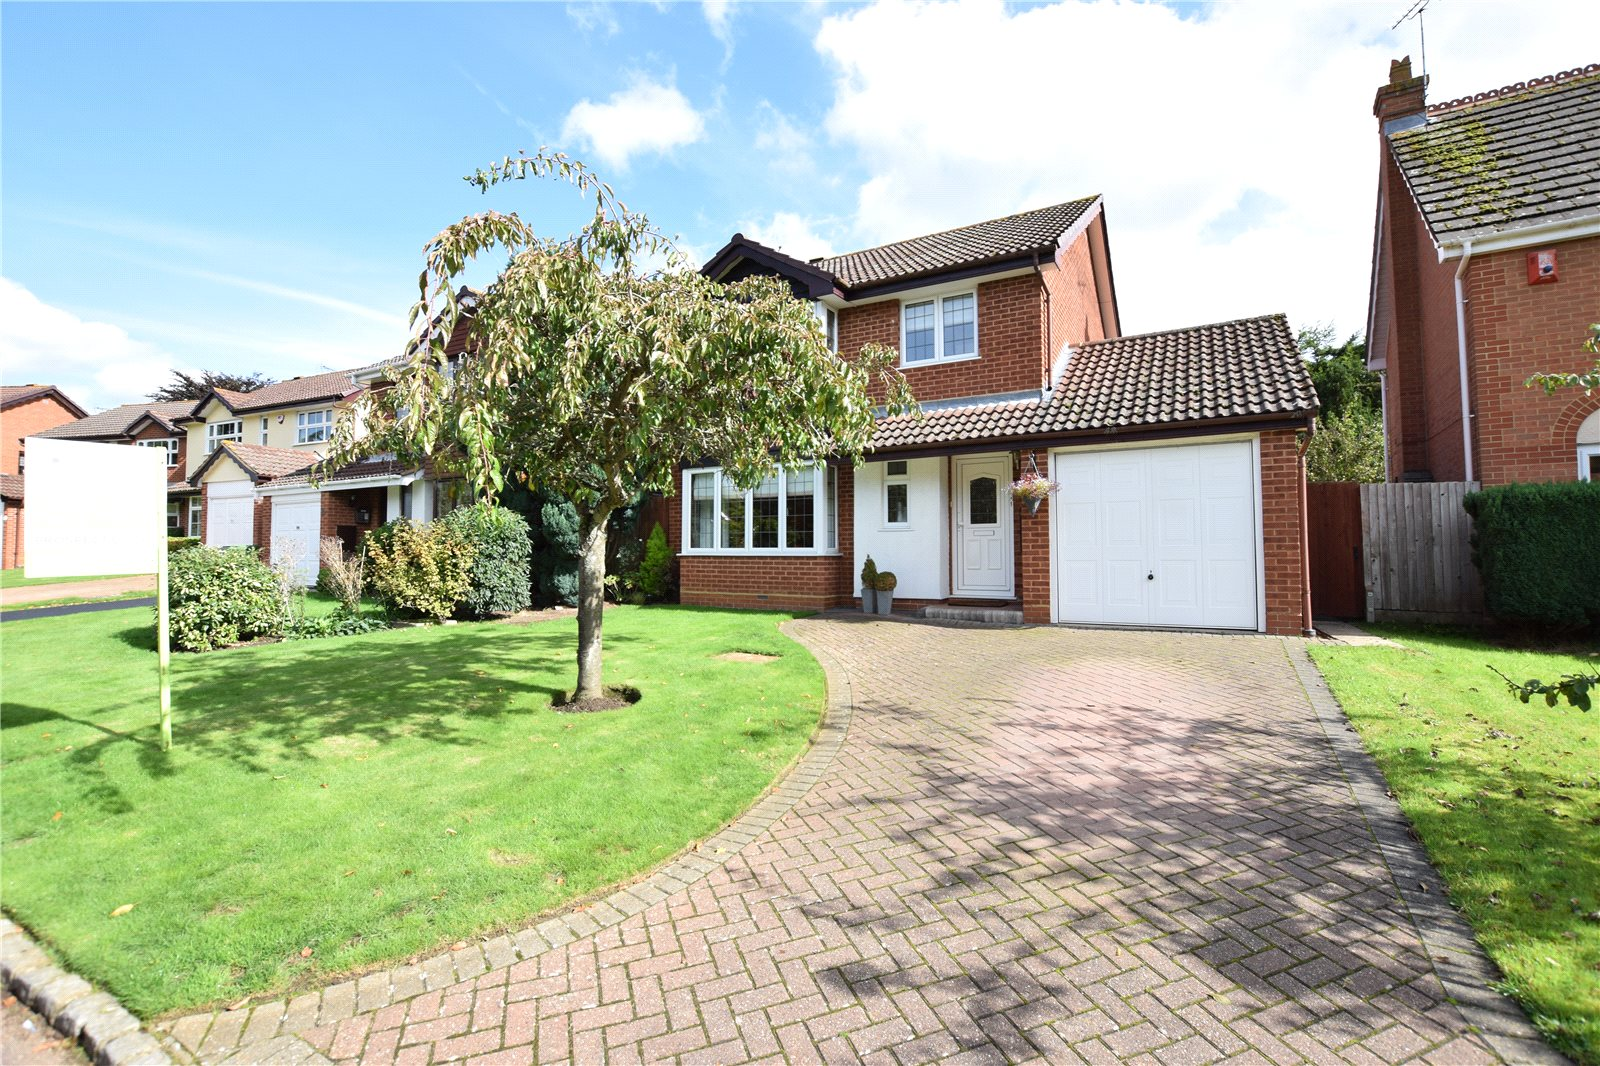 4 Bedrooms Detached House for sale in Woodford Green, The Warren, Bracknell, Berkshire, RG12